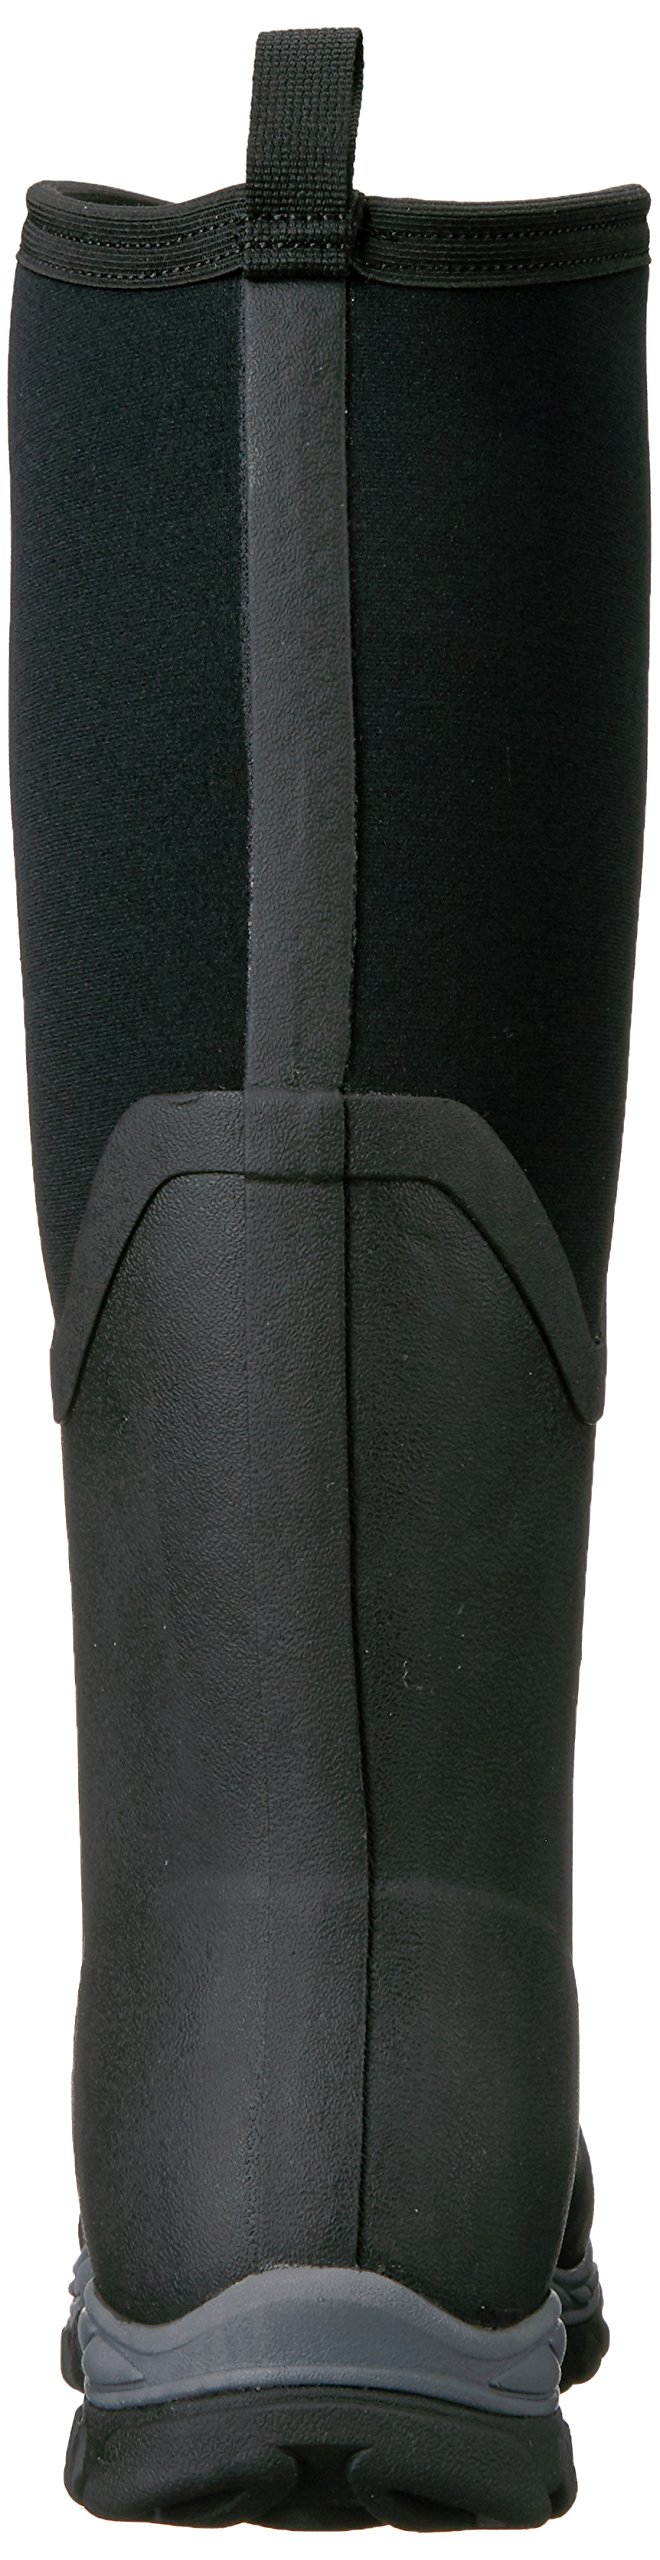 Muck Boot Women's Arctic Sport II Tall Snow Boot, Black, 7 US/7 M US by Muck Boot (Image #2)